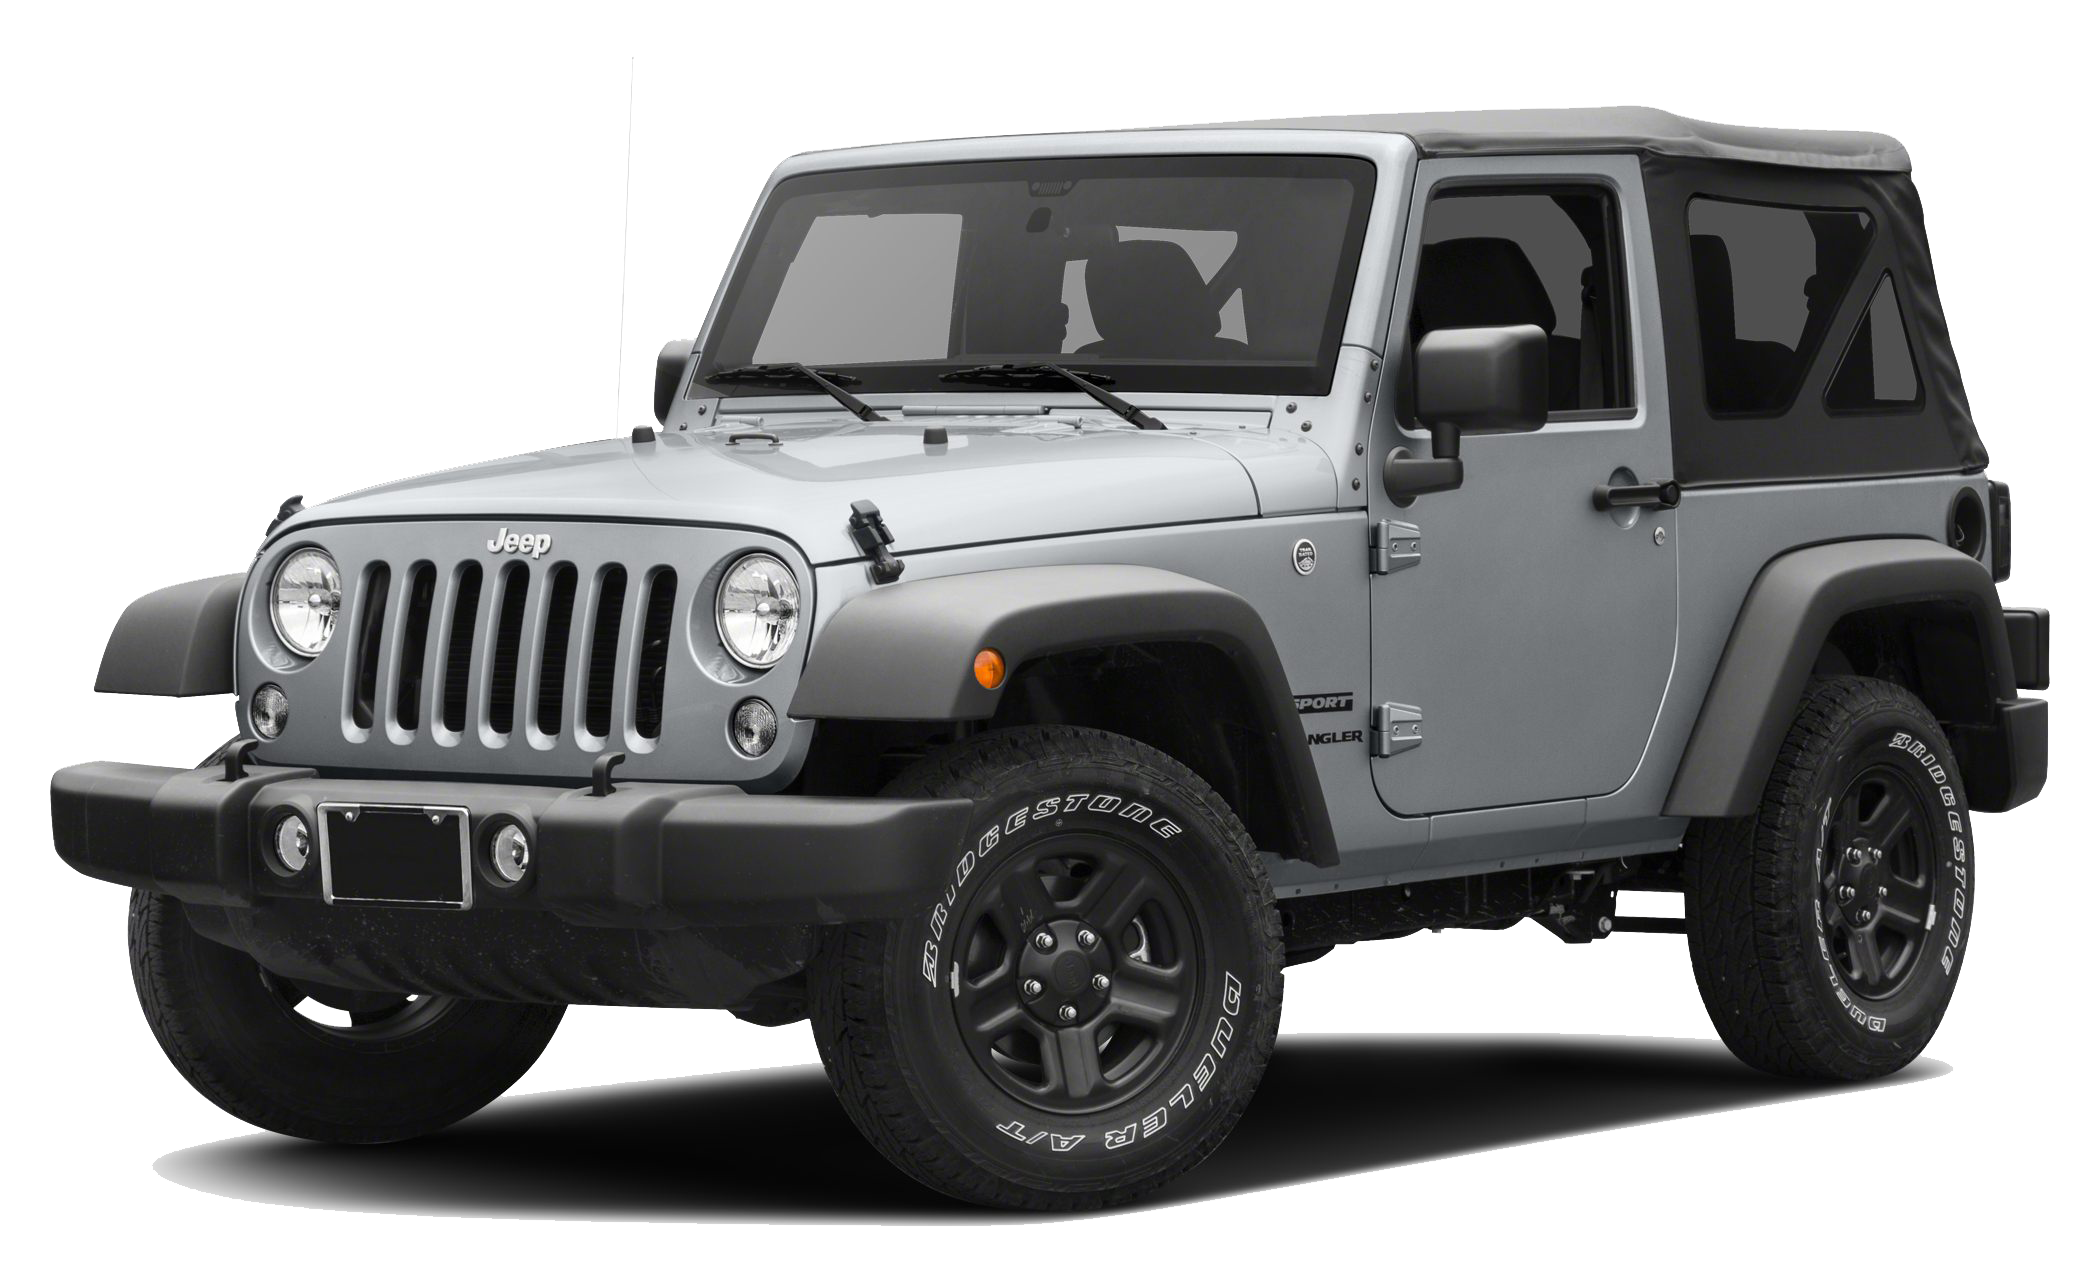 Jeep Service Repair Conversions Unichip Plug And Play Steves Wrangler Fuel Filter Replacement Cherokee